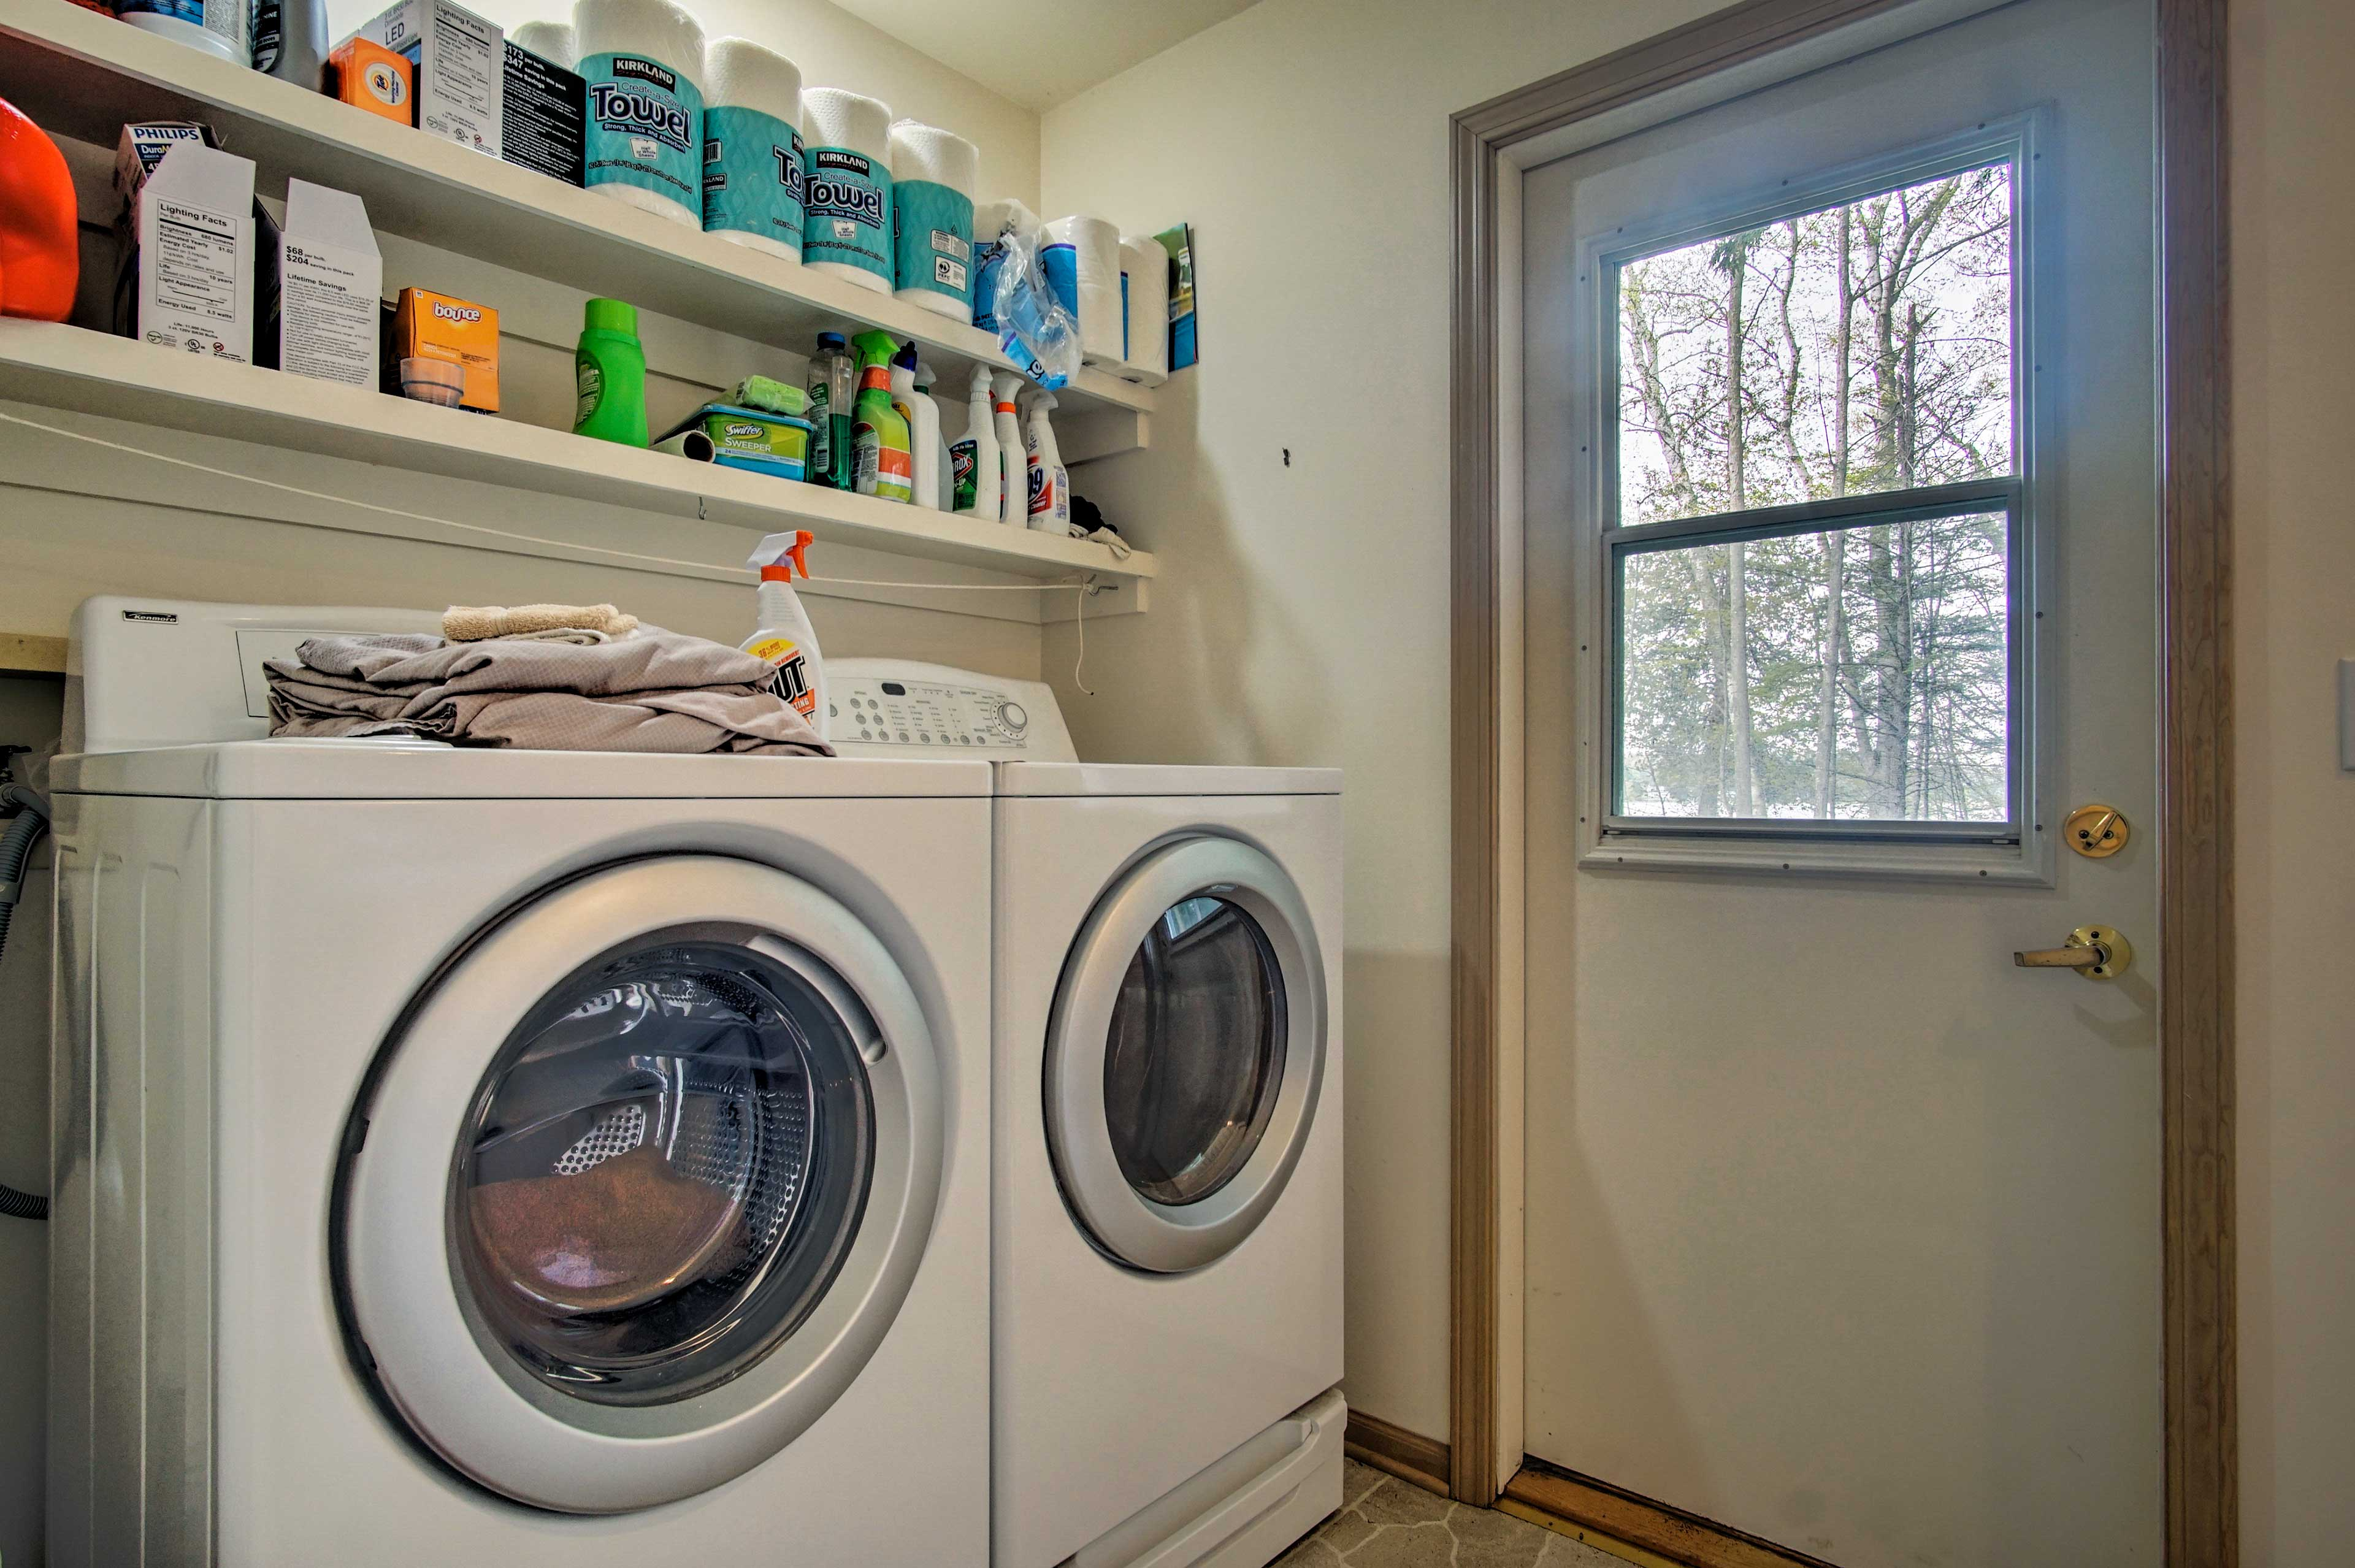 For your convenience, laundry detergent is provided!